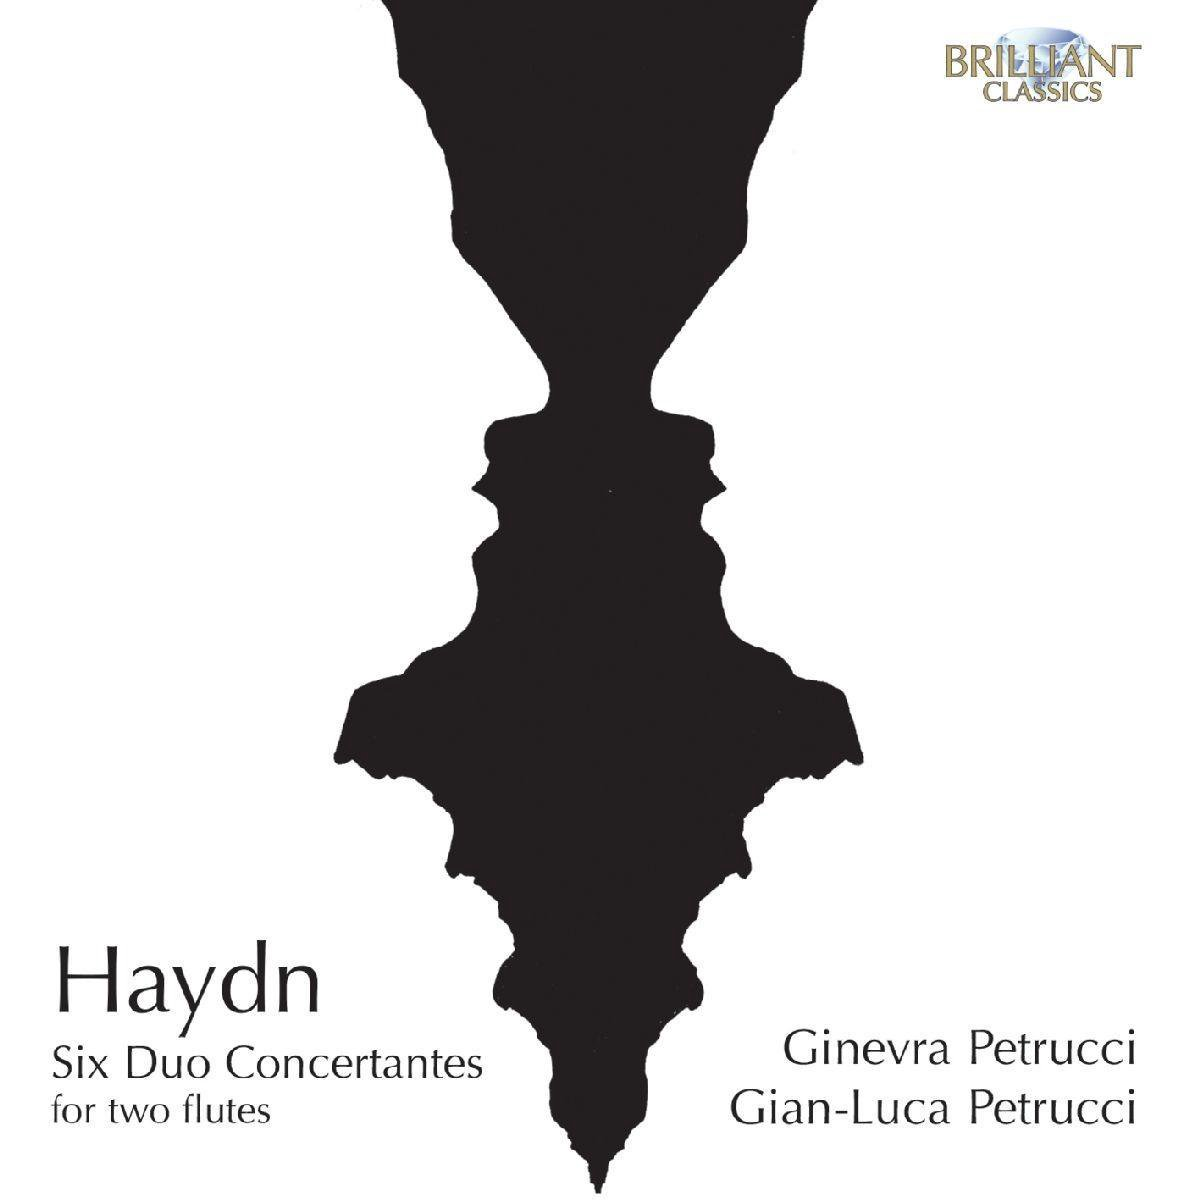 Haydn: Six Duo Concertantes For Two - Ginevra Petrucci